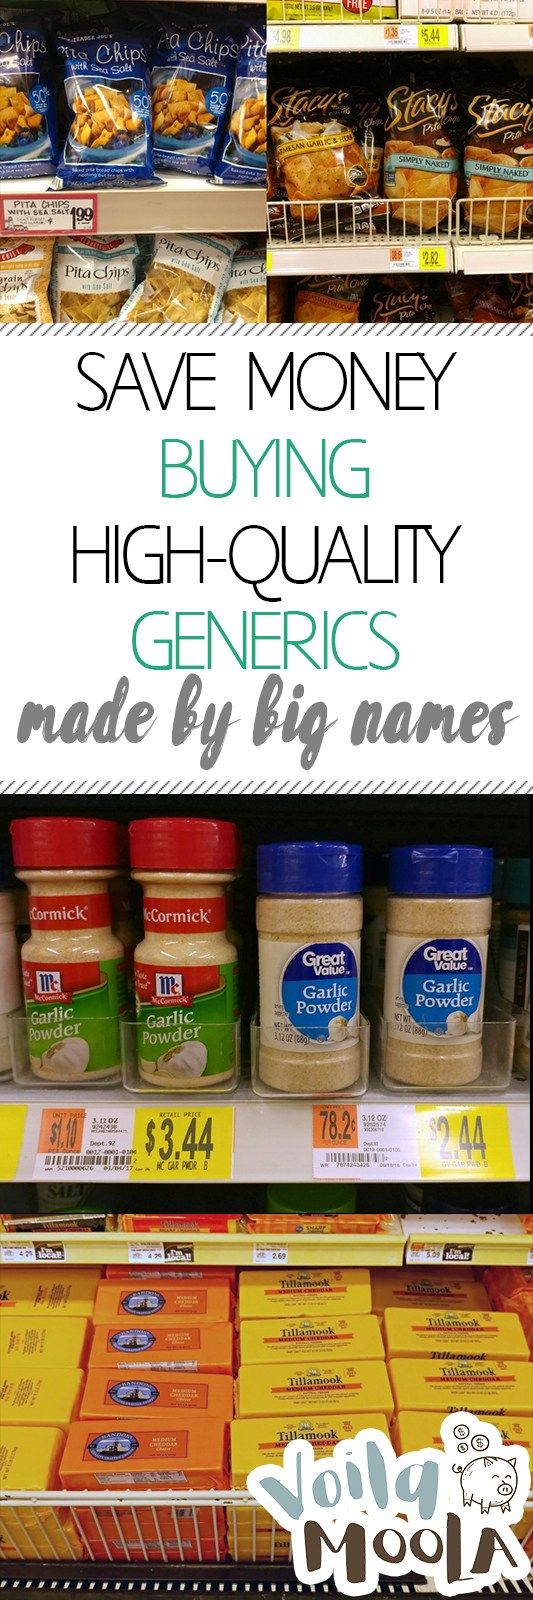 Save Money Buying High-Quality Generics Made by Big Names| Save Money, Money Saving Hacks, Save Money With these Tips, Money Saving 101, #SaveMoney #SaveMoneyShopping